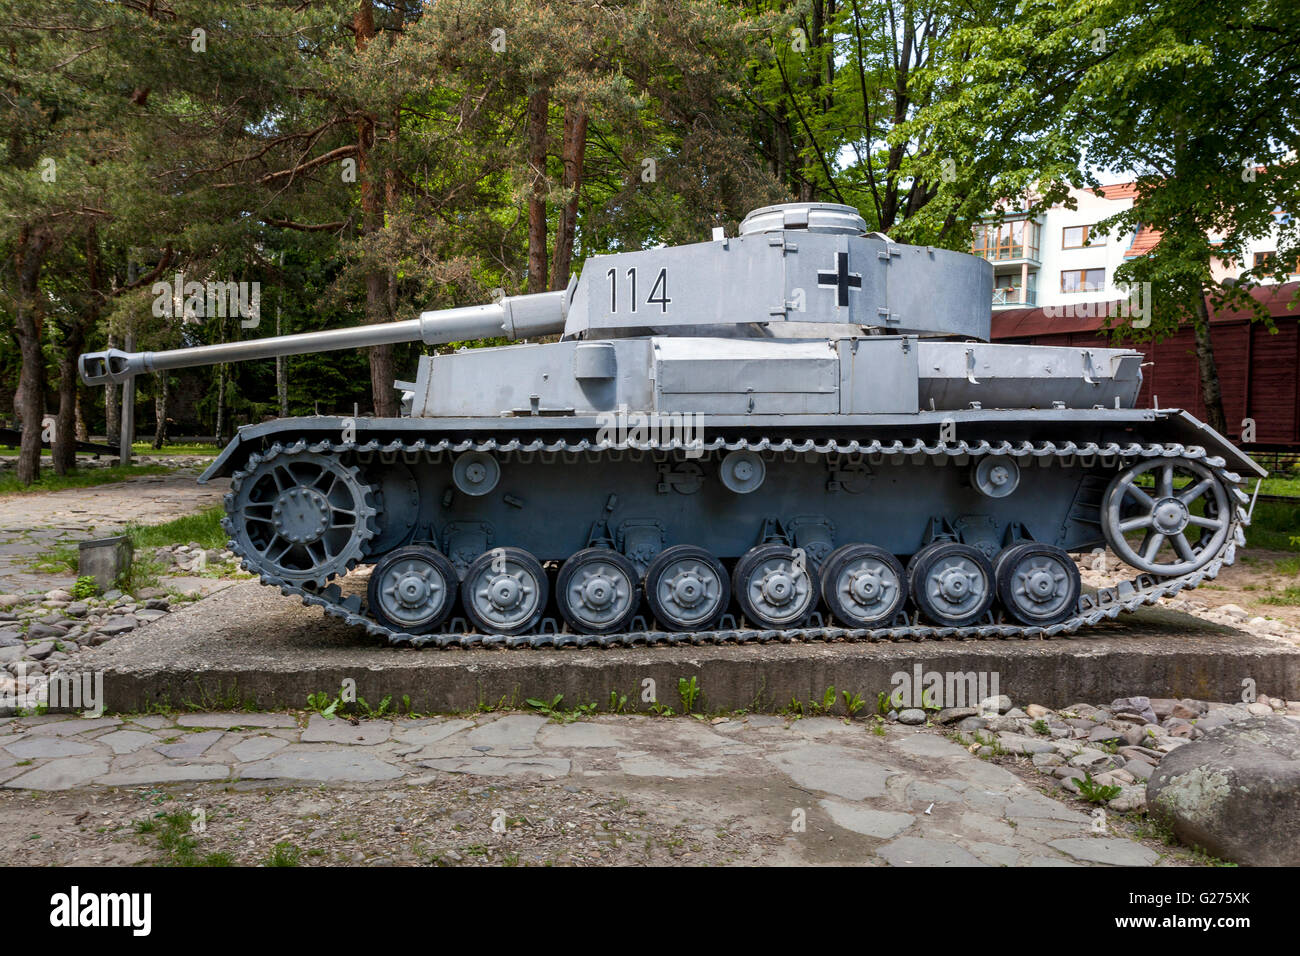 museum of snp military equipment from ww2 tank tiger iv german stock photo royalty free image. Black Bedroom Furniture Sets. Home Design Ideas